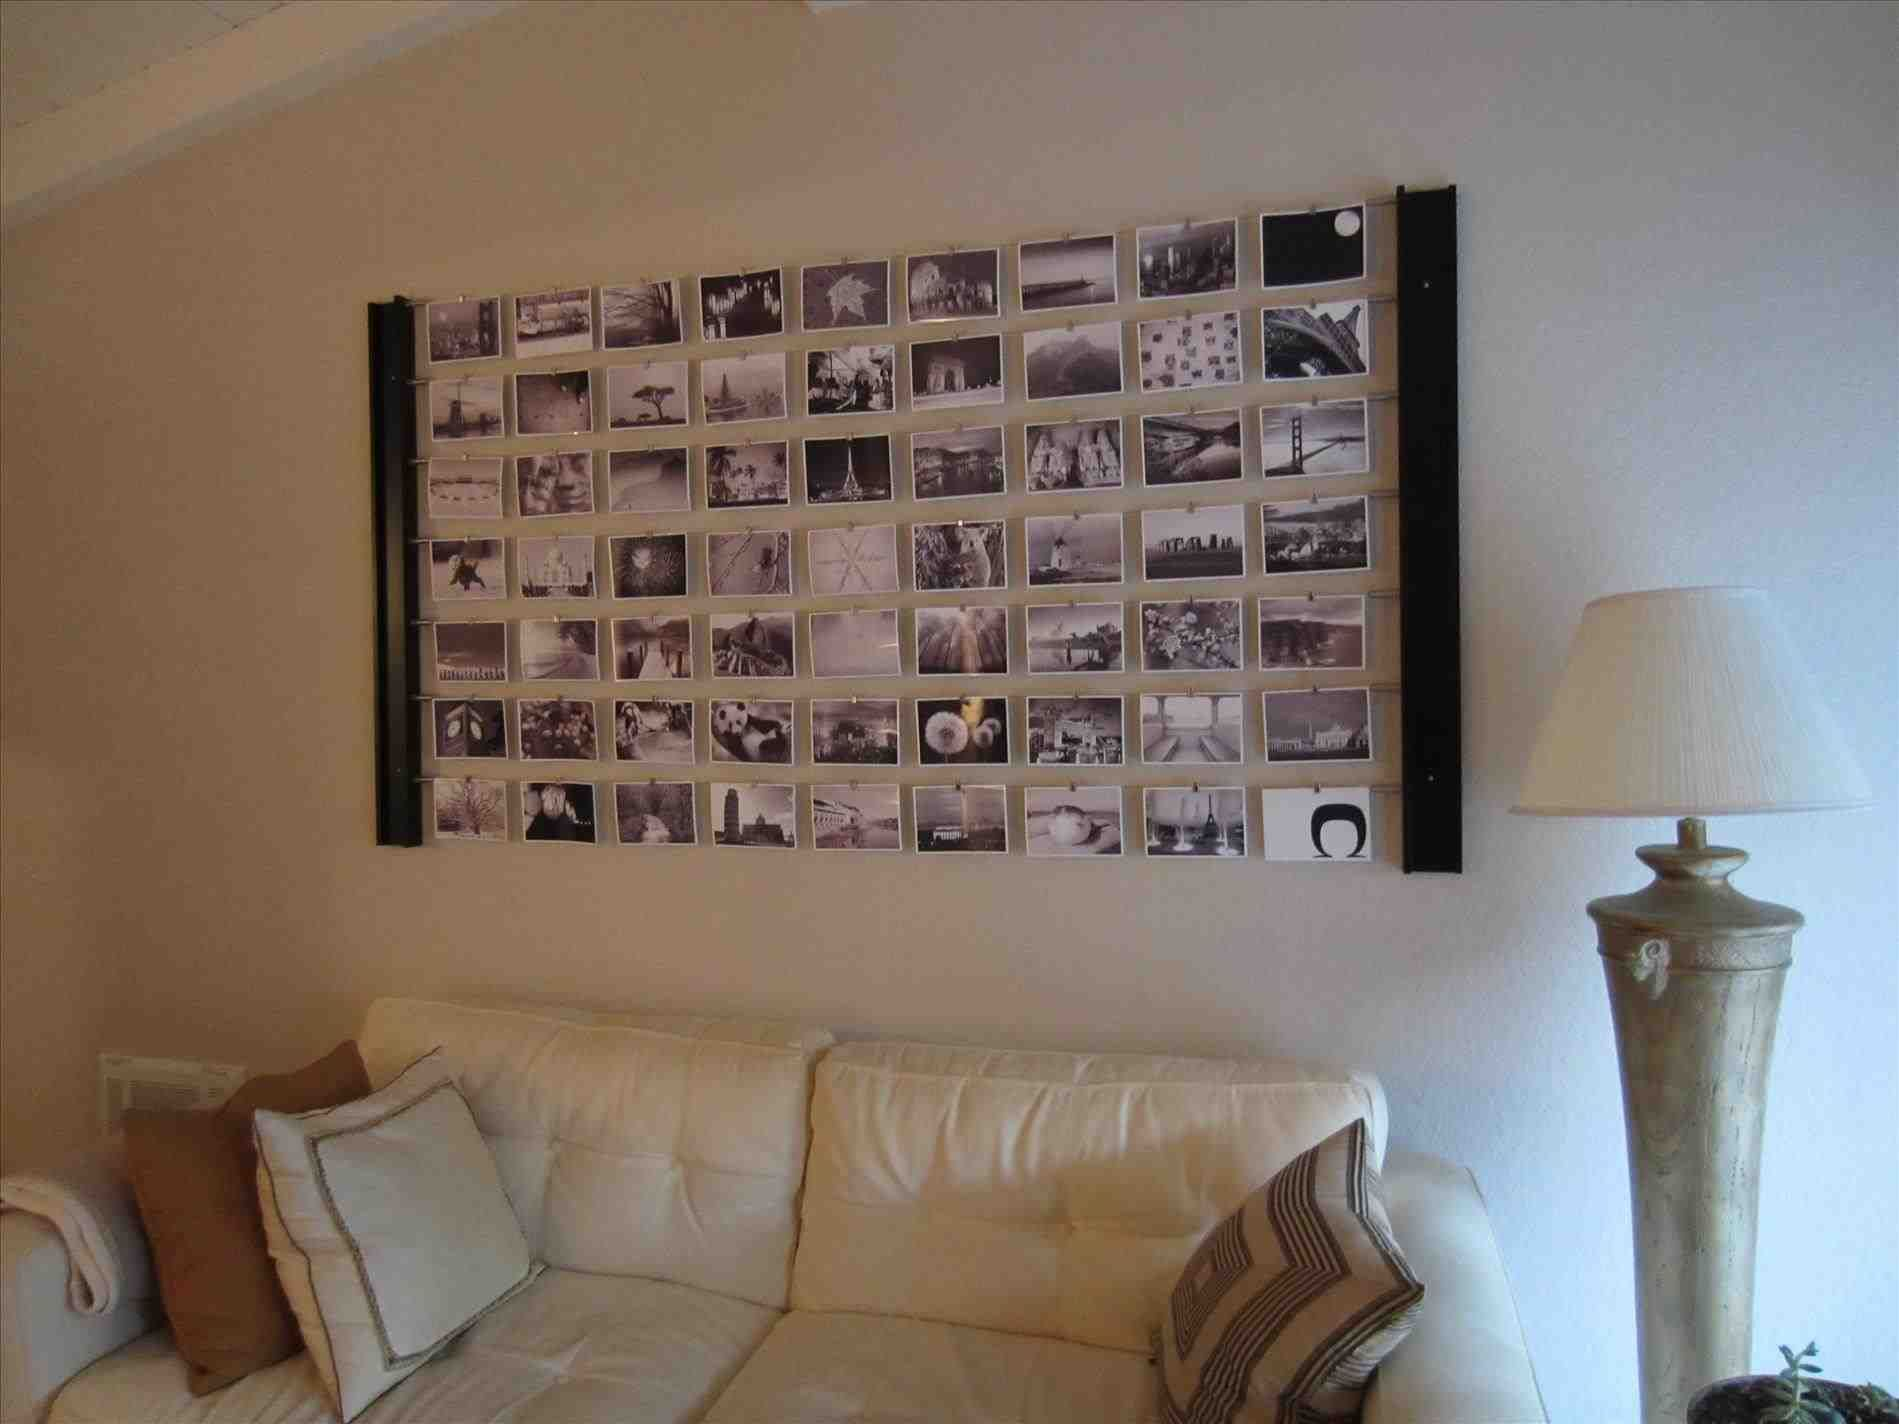 New post homemade wall decoration ideas for bedroom has been